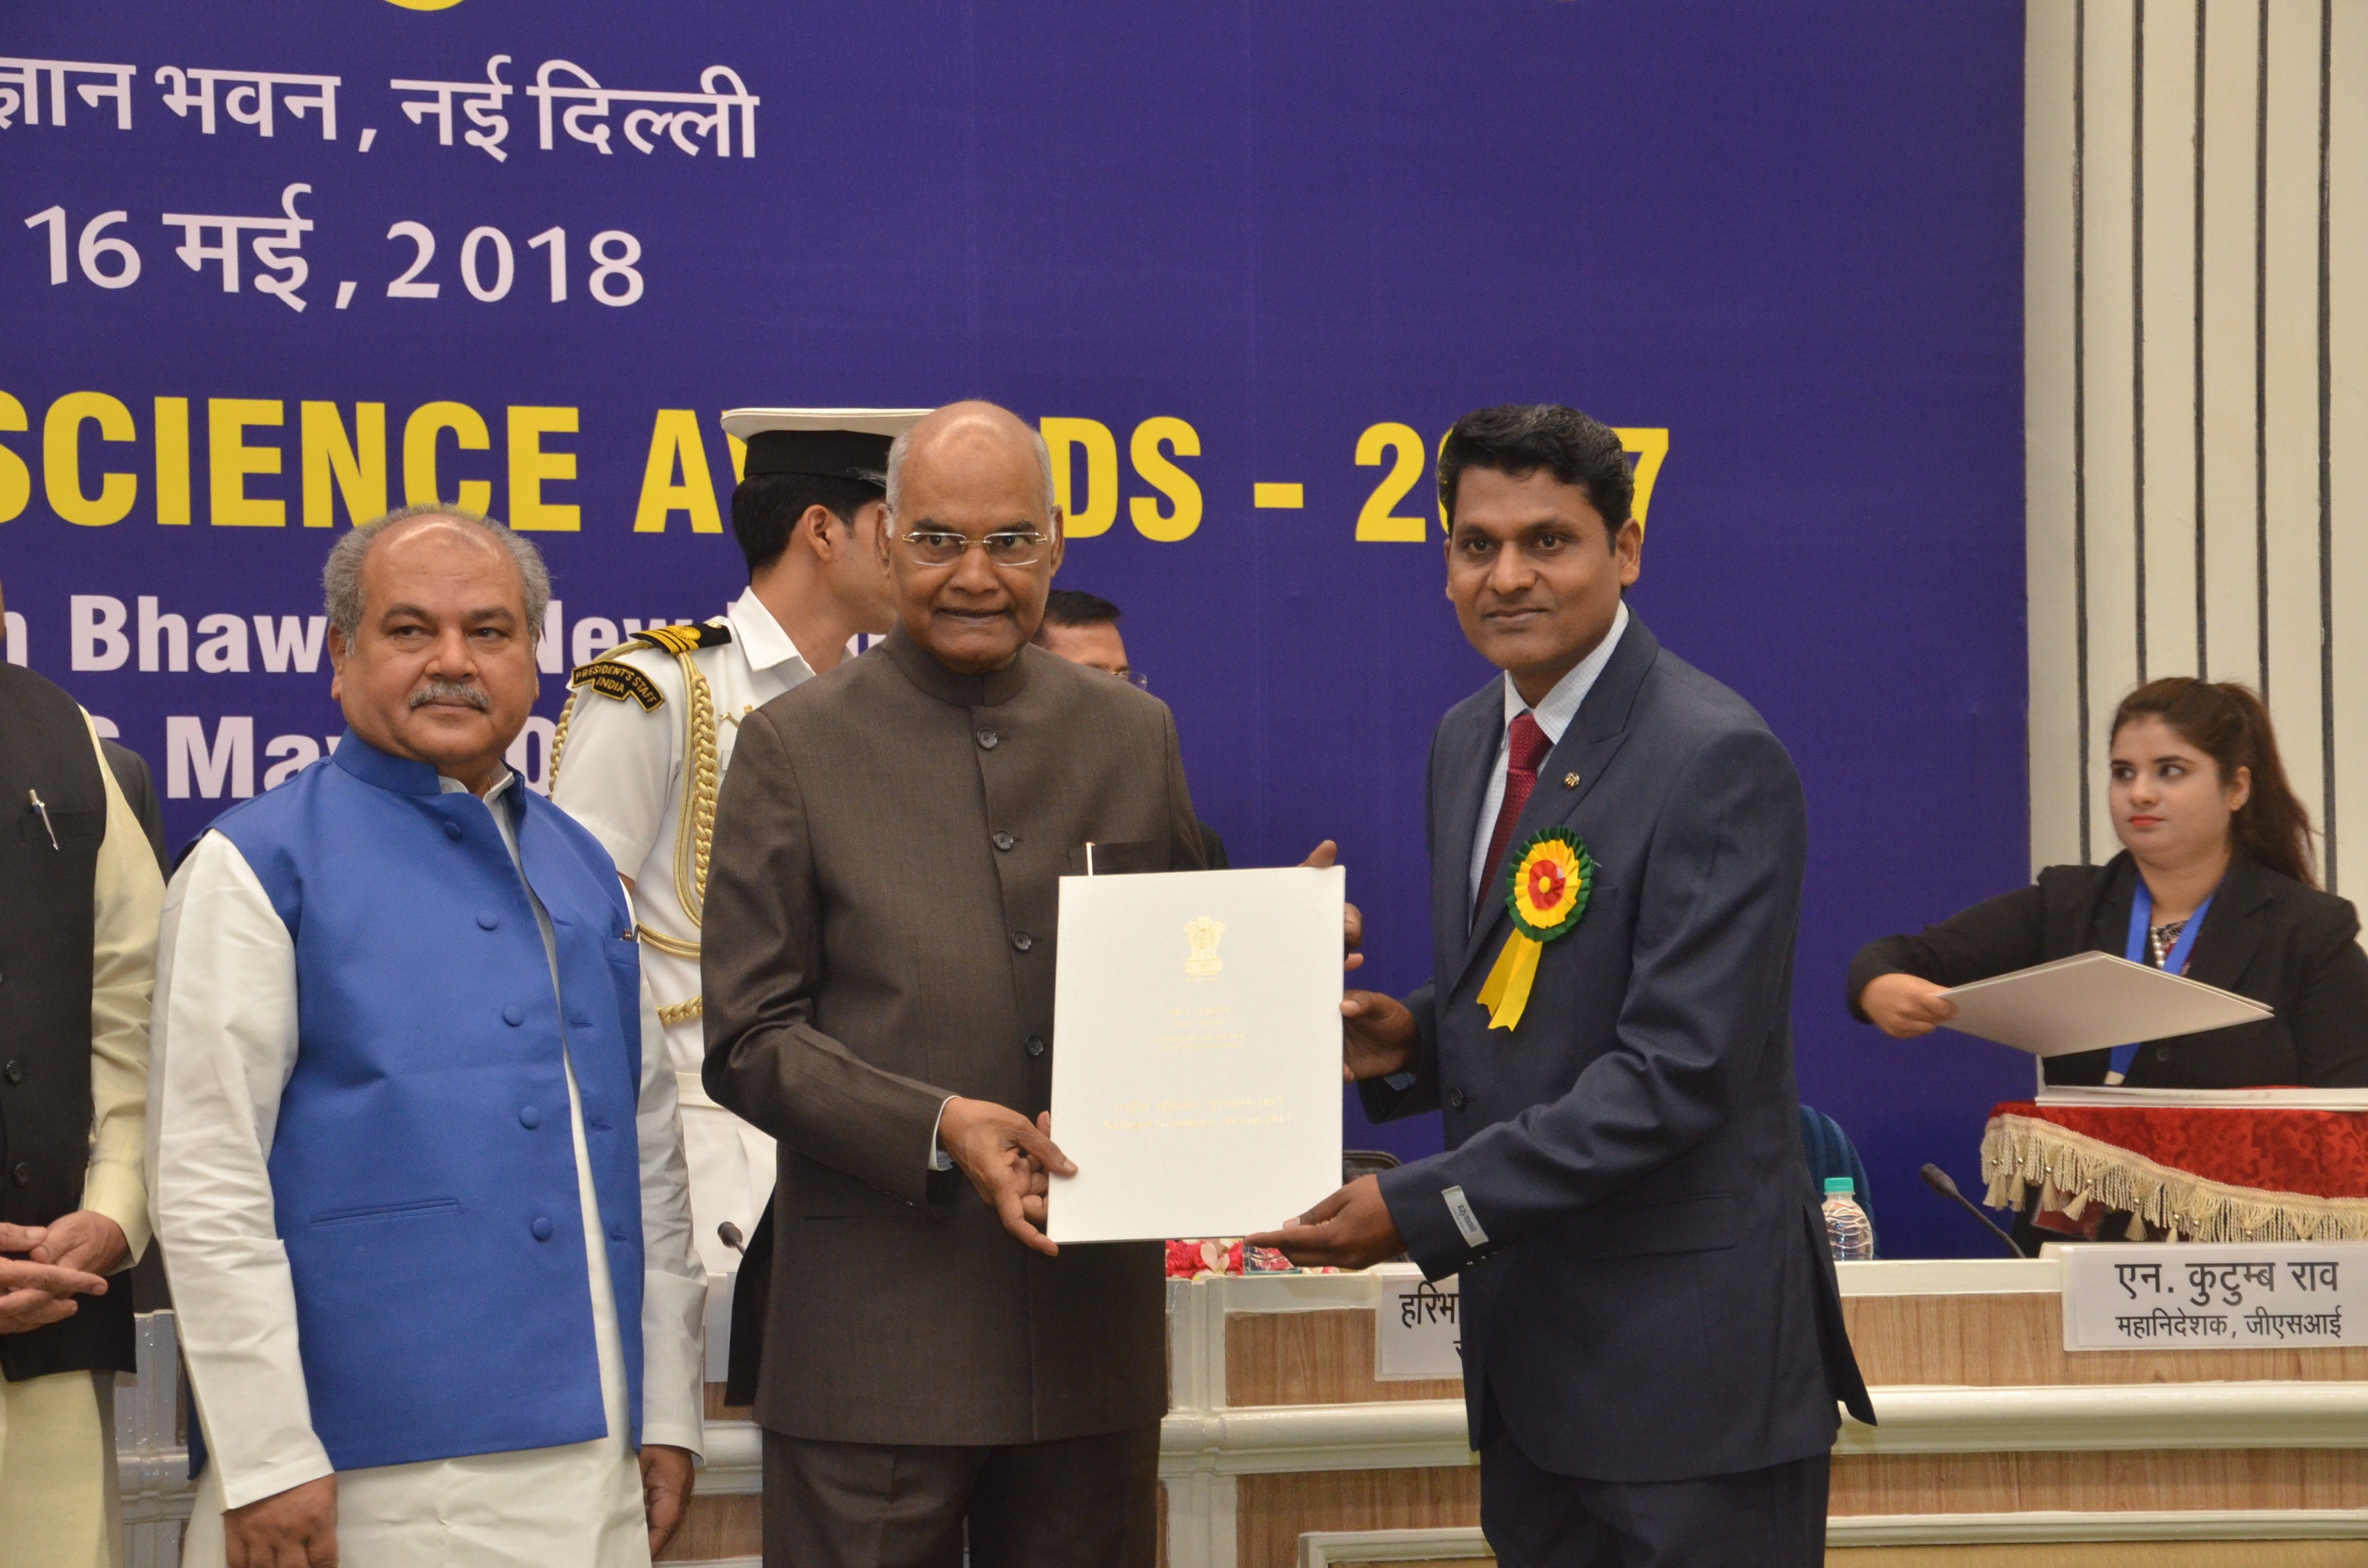 Dr. Sahebrao Sonkamble, Scientist, CSIR- NGRI, Hyderabad, has been selected for the prestigious National Geoscience Award (earlier known as National Mineral Award) by the Ministry of Mines, Govt. of India for the year 2017 for their significant contributions in the field of Groundwater Exploration (including project development, hydrogeological studies and management of groundwater resources) Team Award.